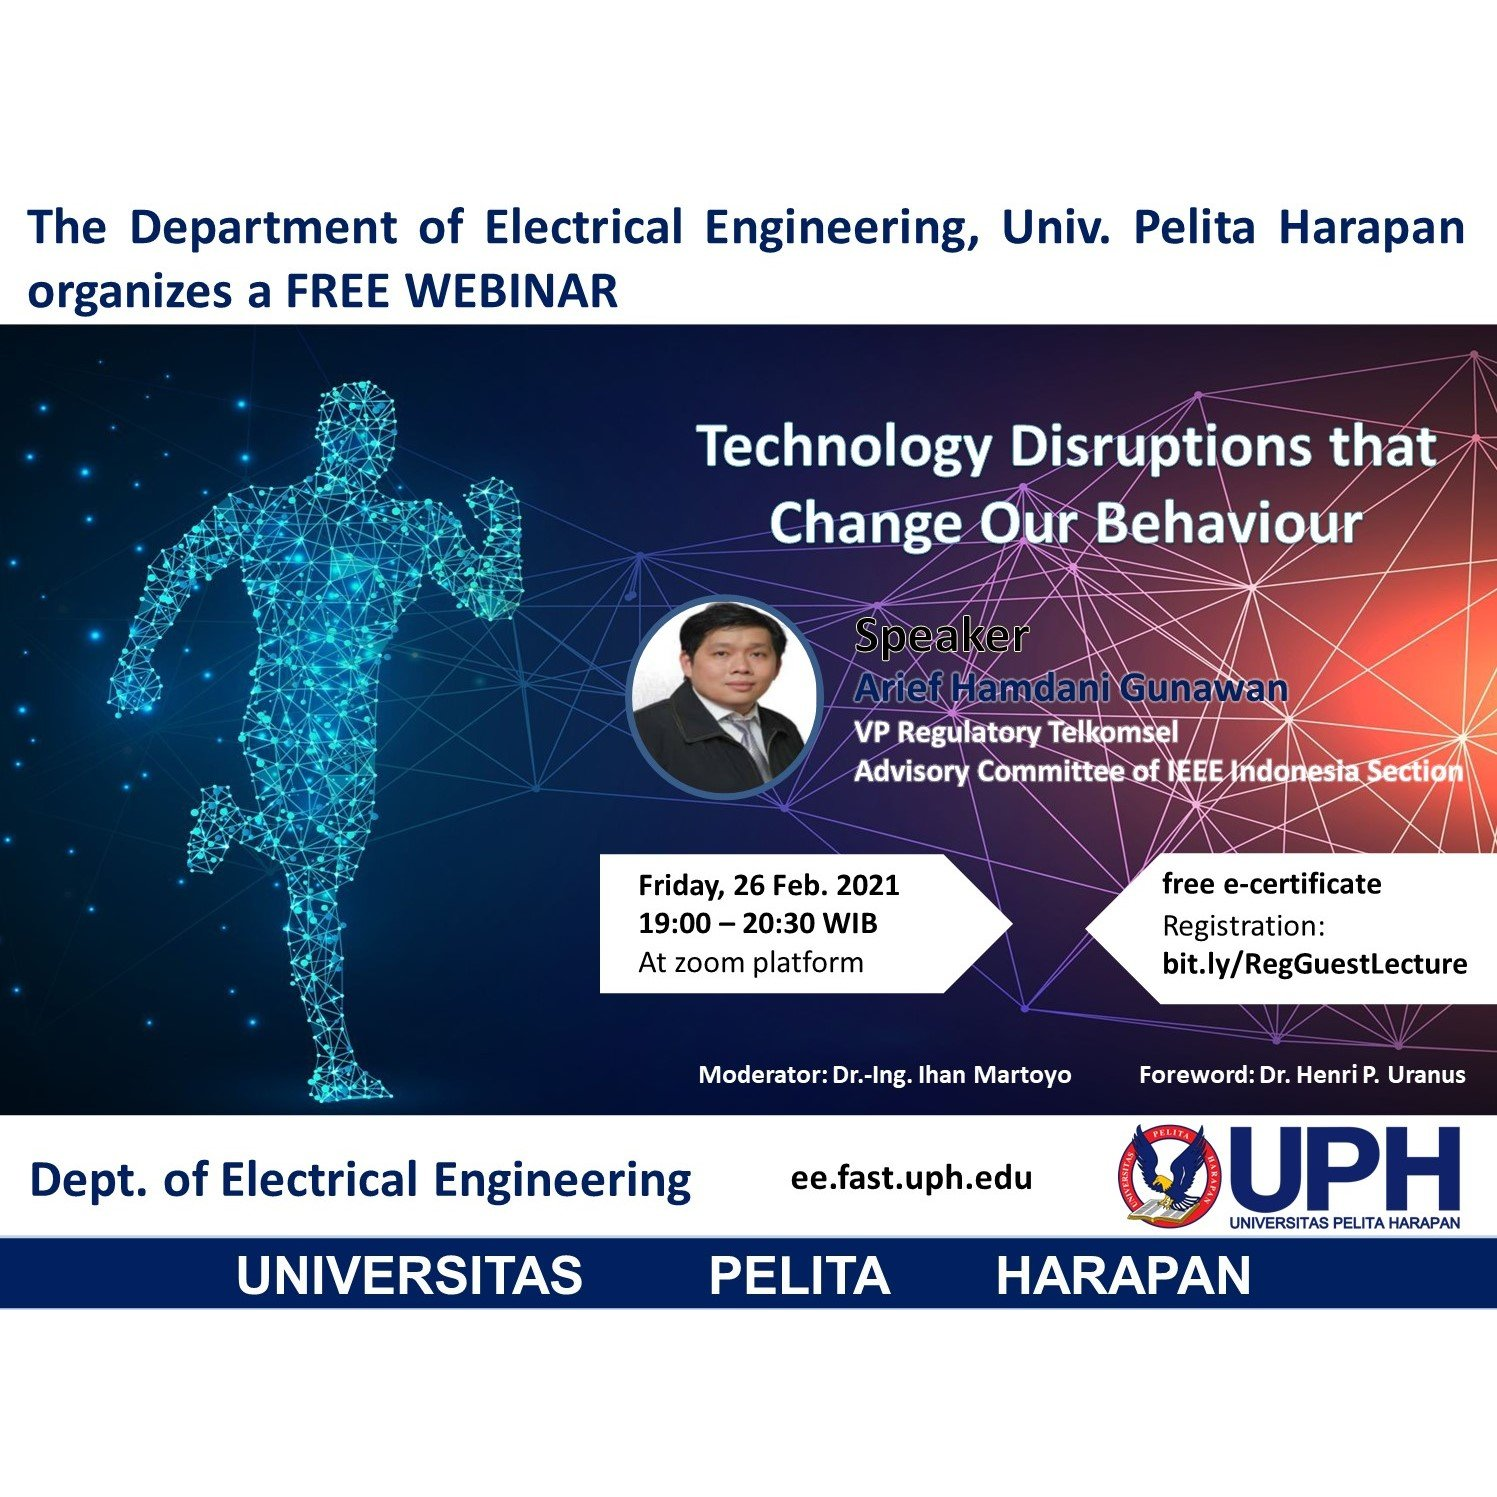 Webinar: Technology Disruptions that Change Our Behavior